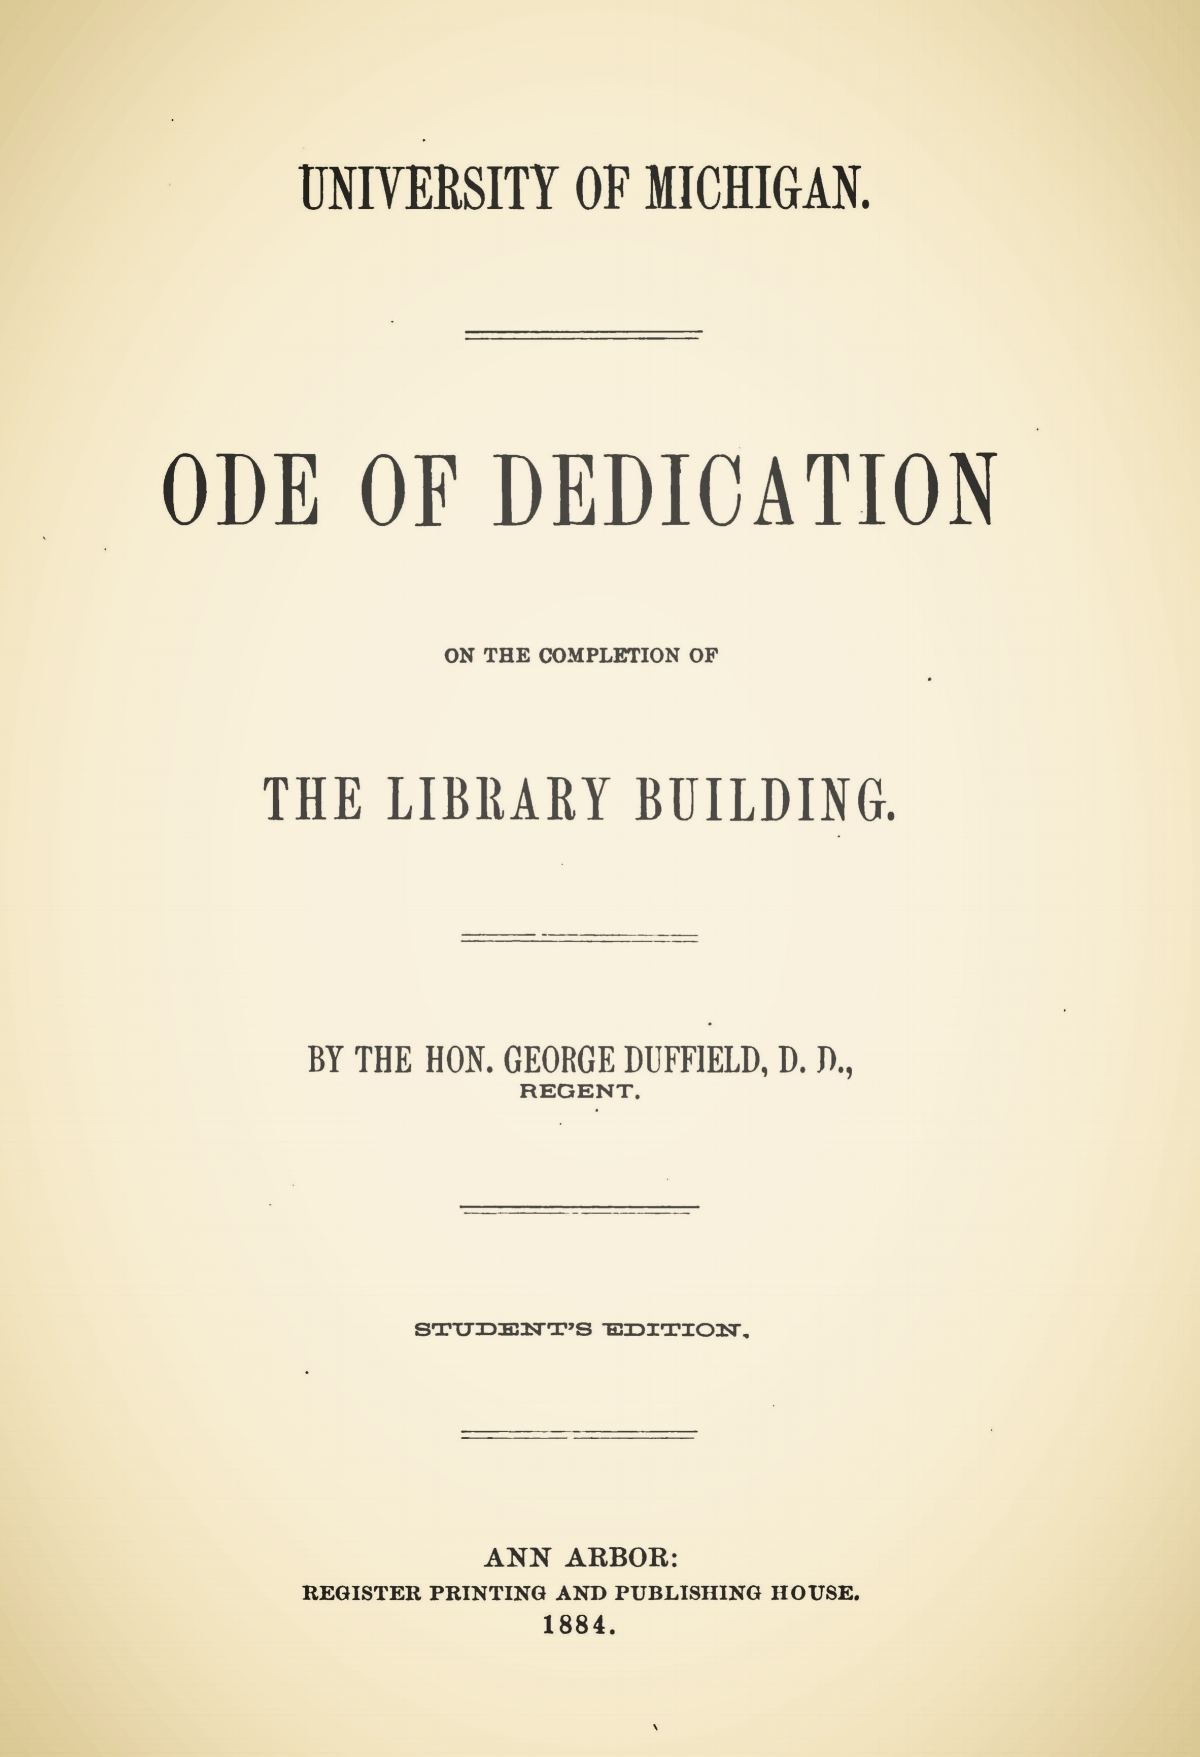 Duffield, V, George, Ode of Dedication on the Completion of the Library Building Title Page.jpg